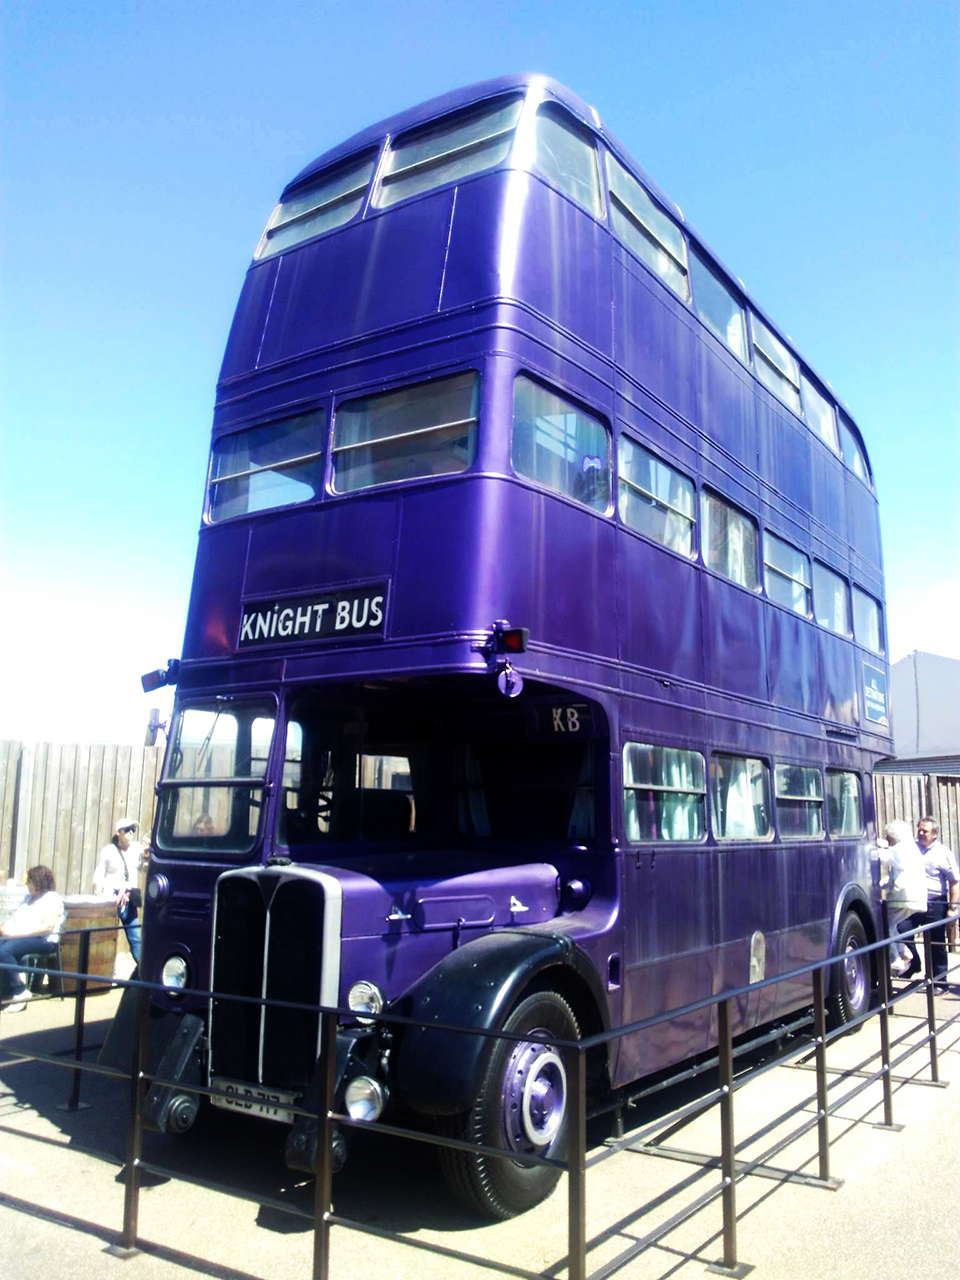 harry potter studios knight bus